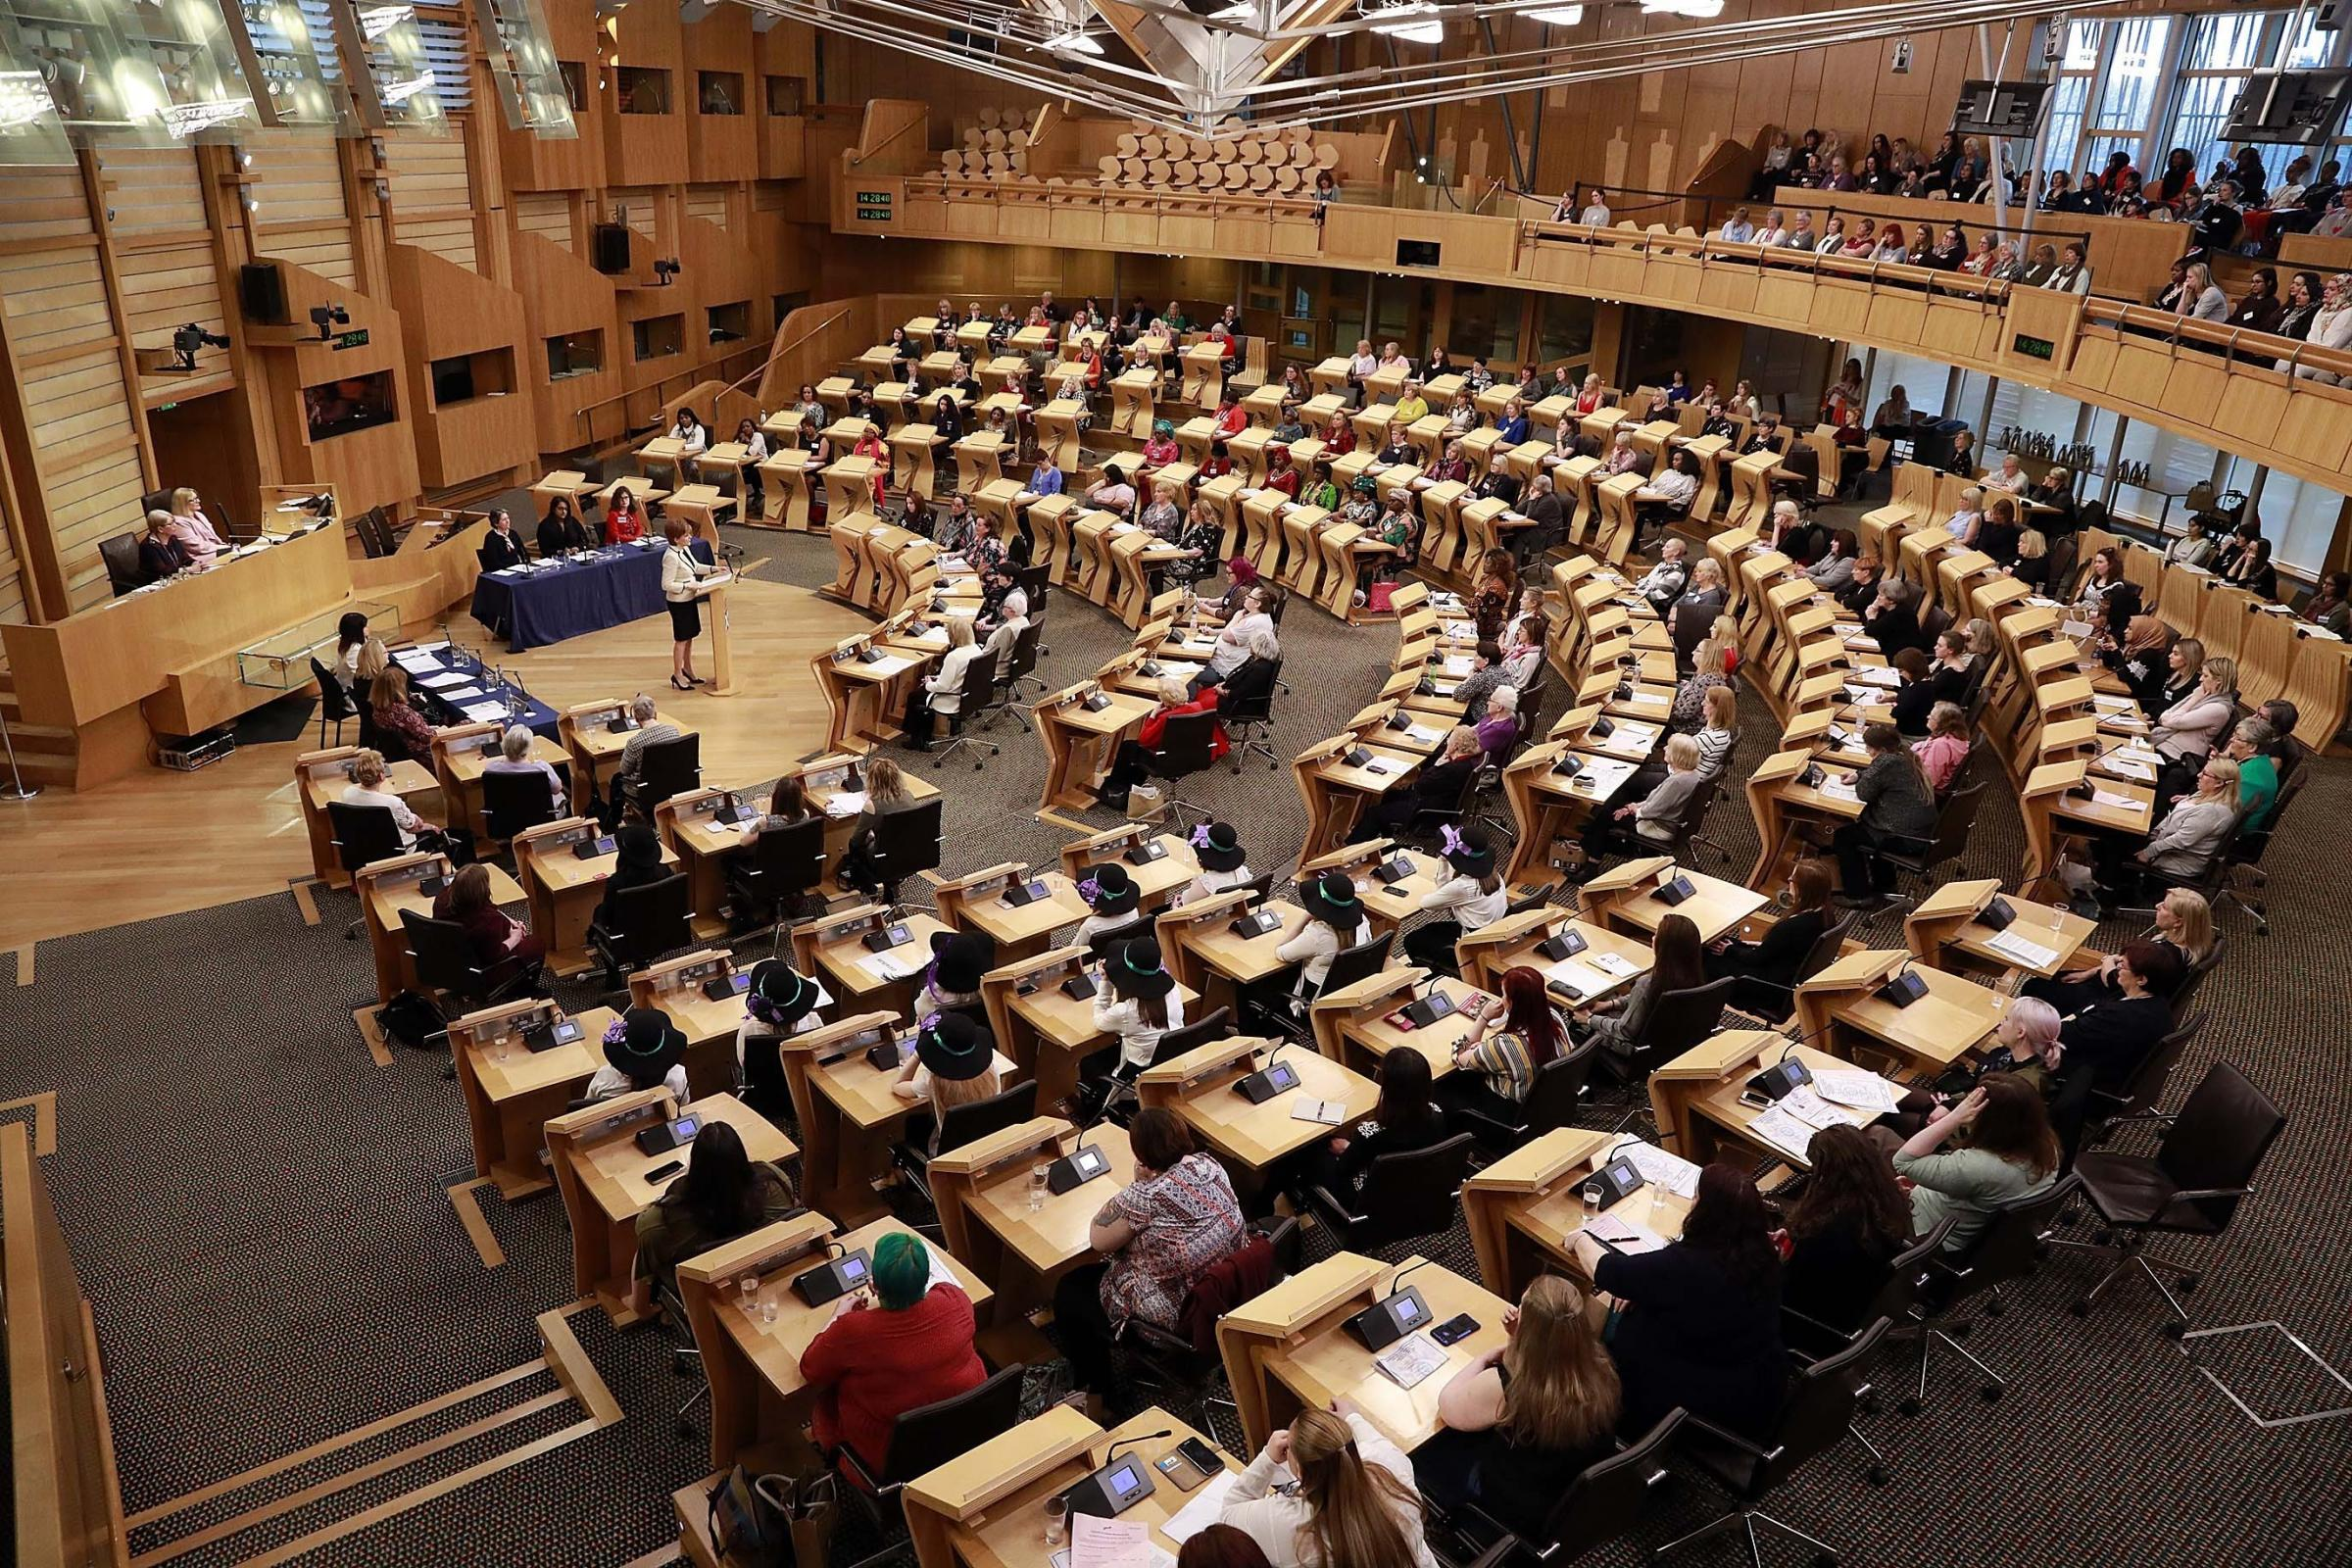 A German journalist says Holyrood has changed Scotland's standing in Europe and the world